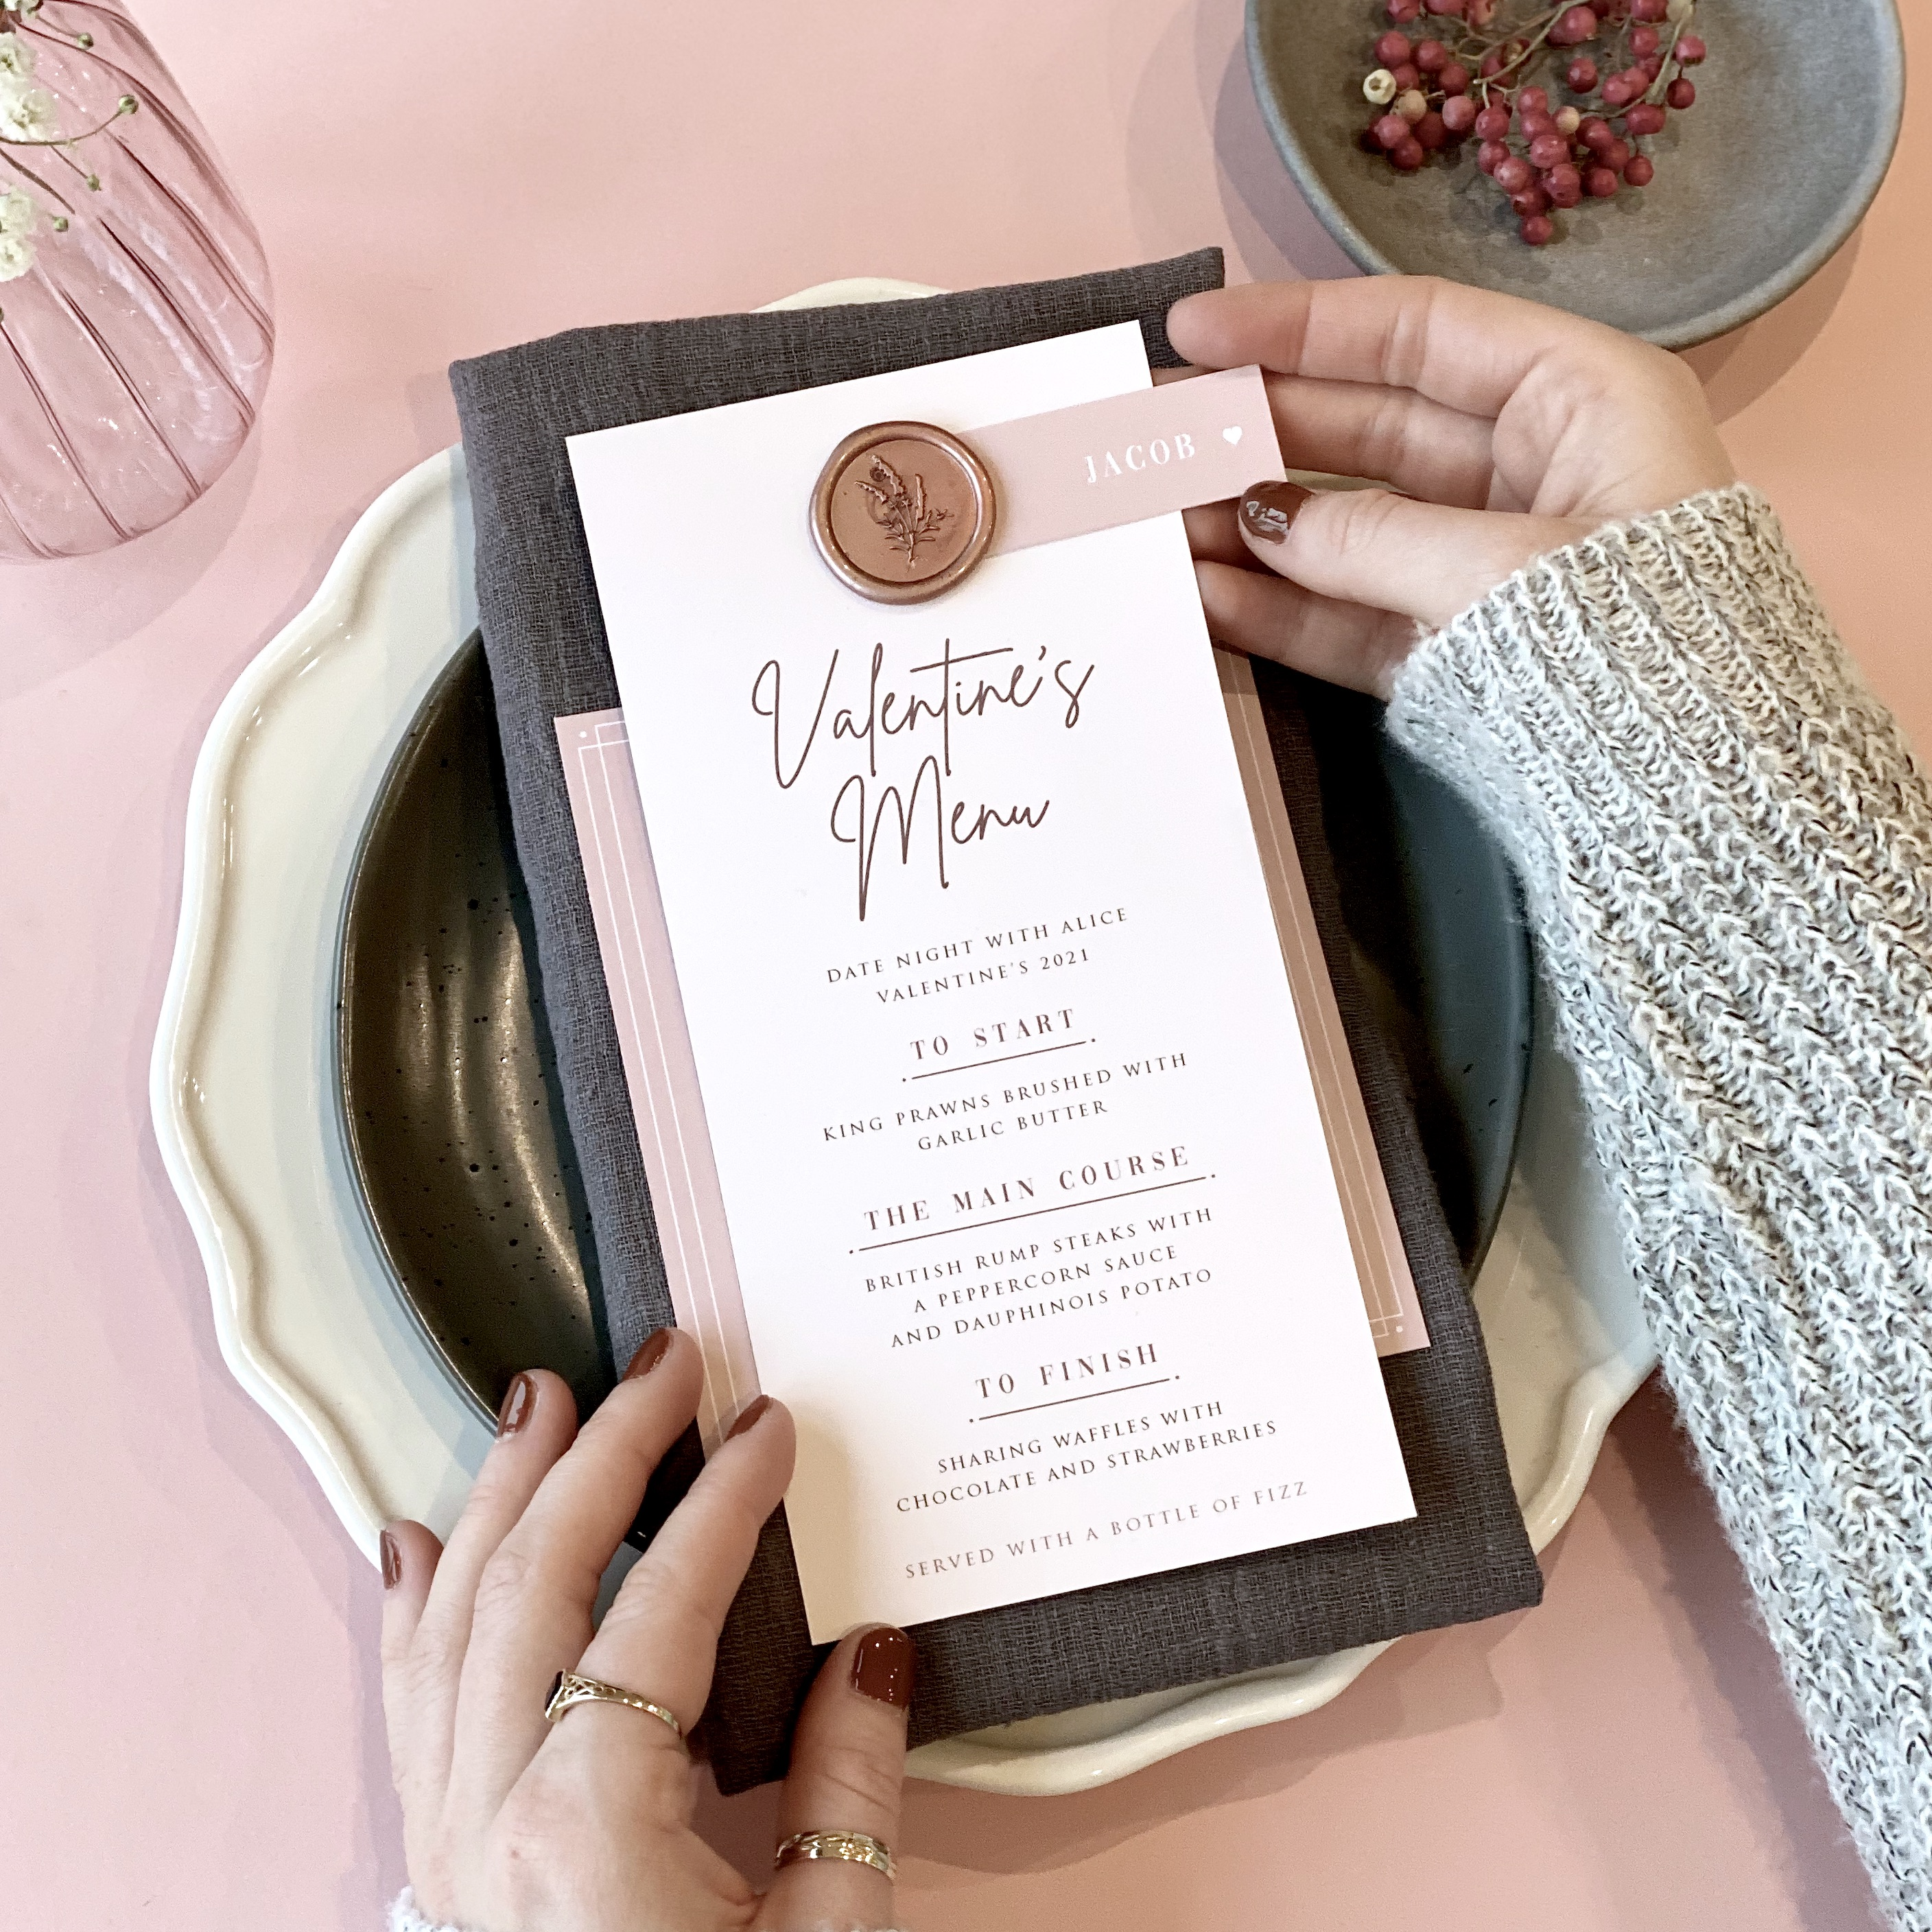 Valentine's Day Menu - Designed by Rodo Creative - Wedding stationery and greetings card design